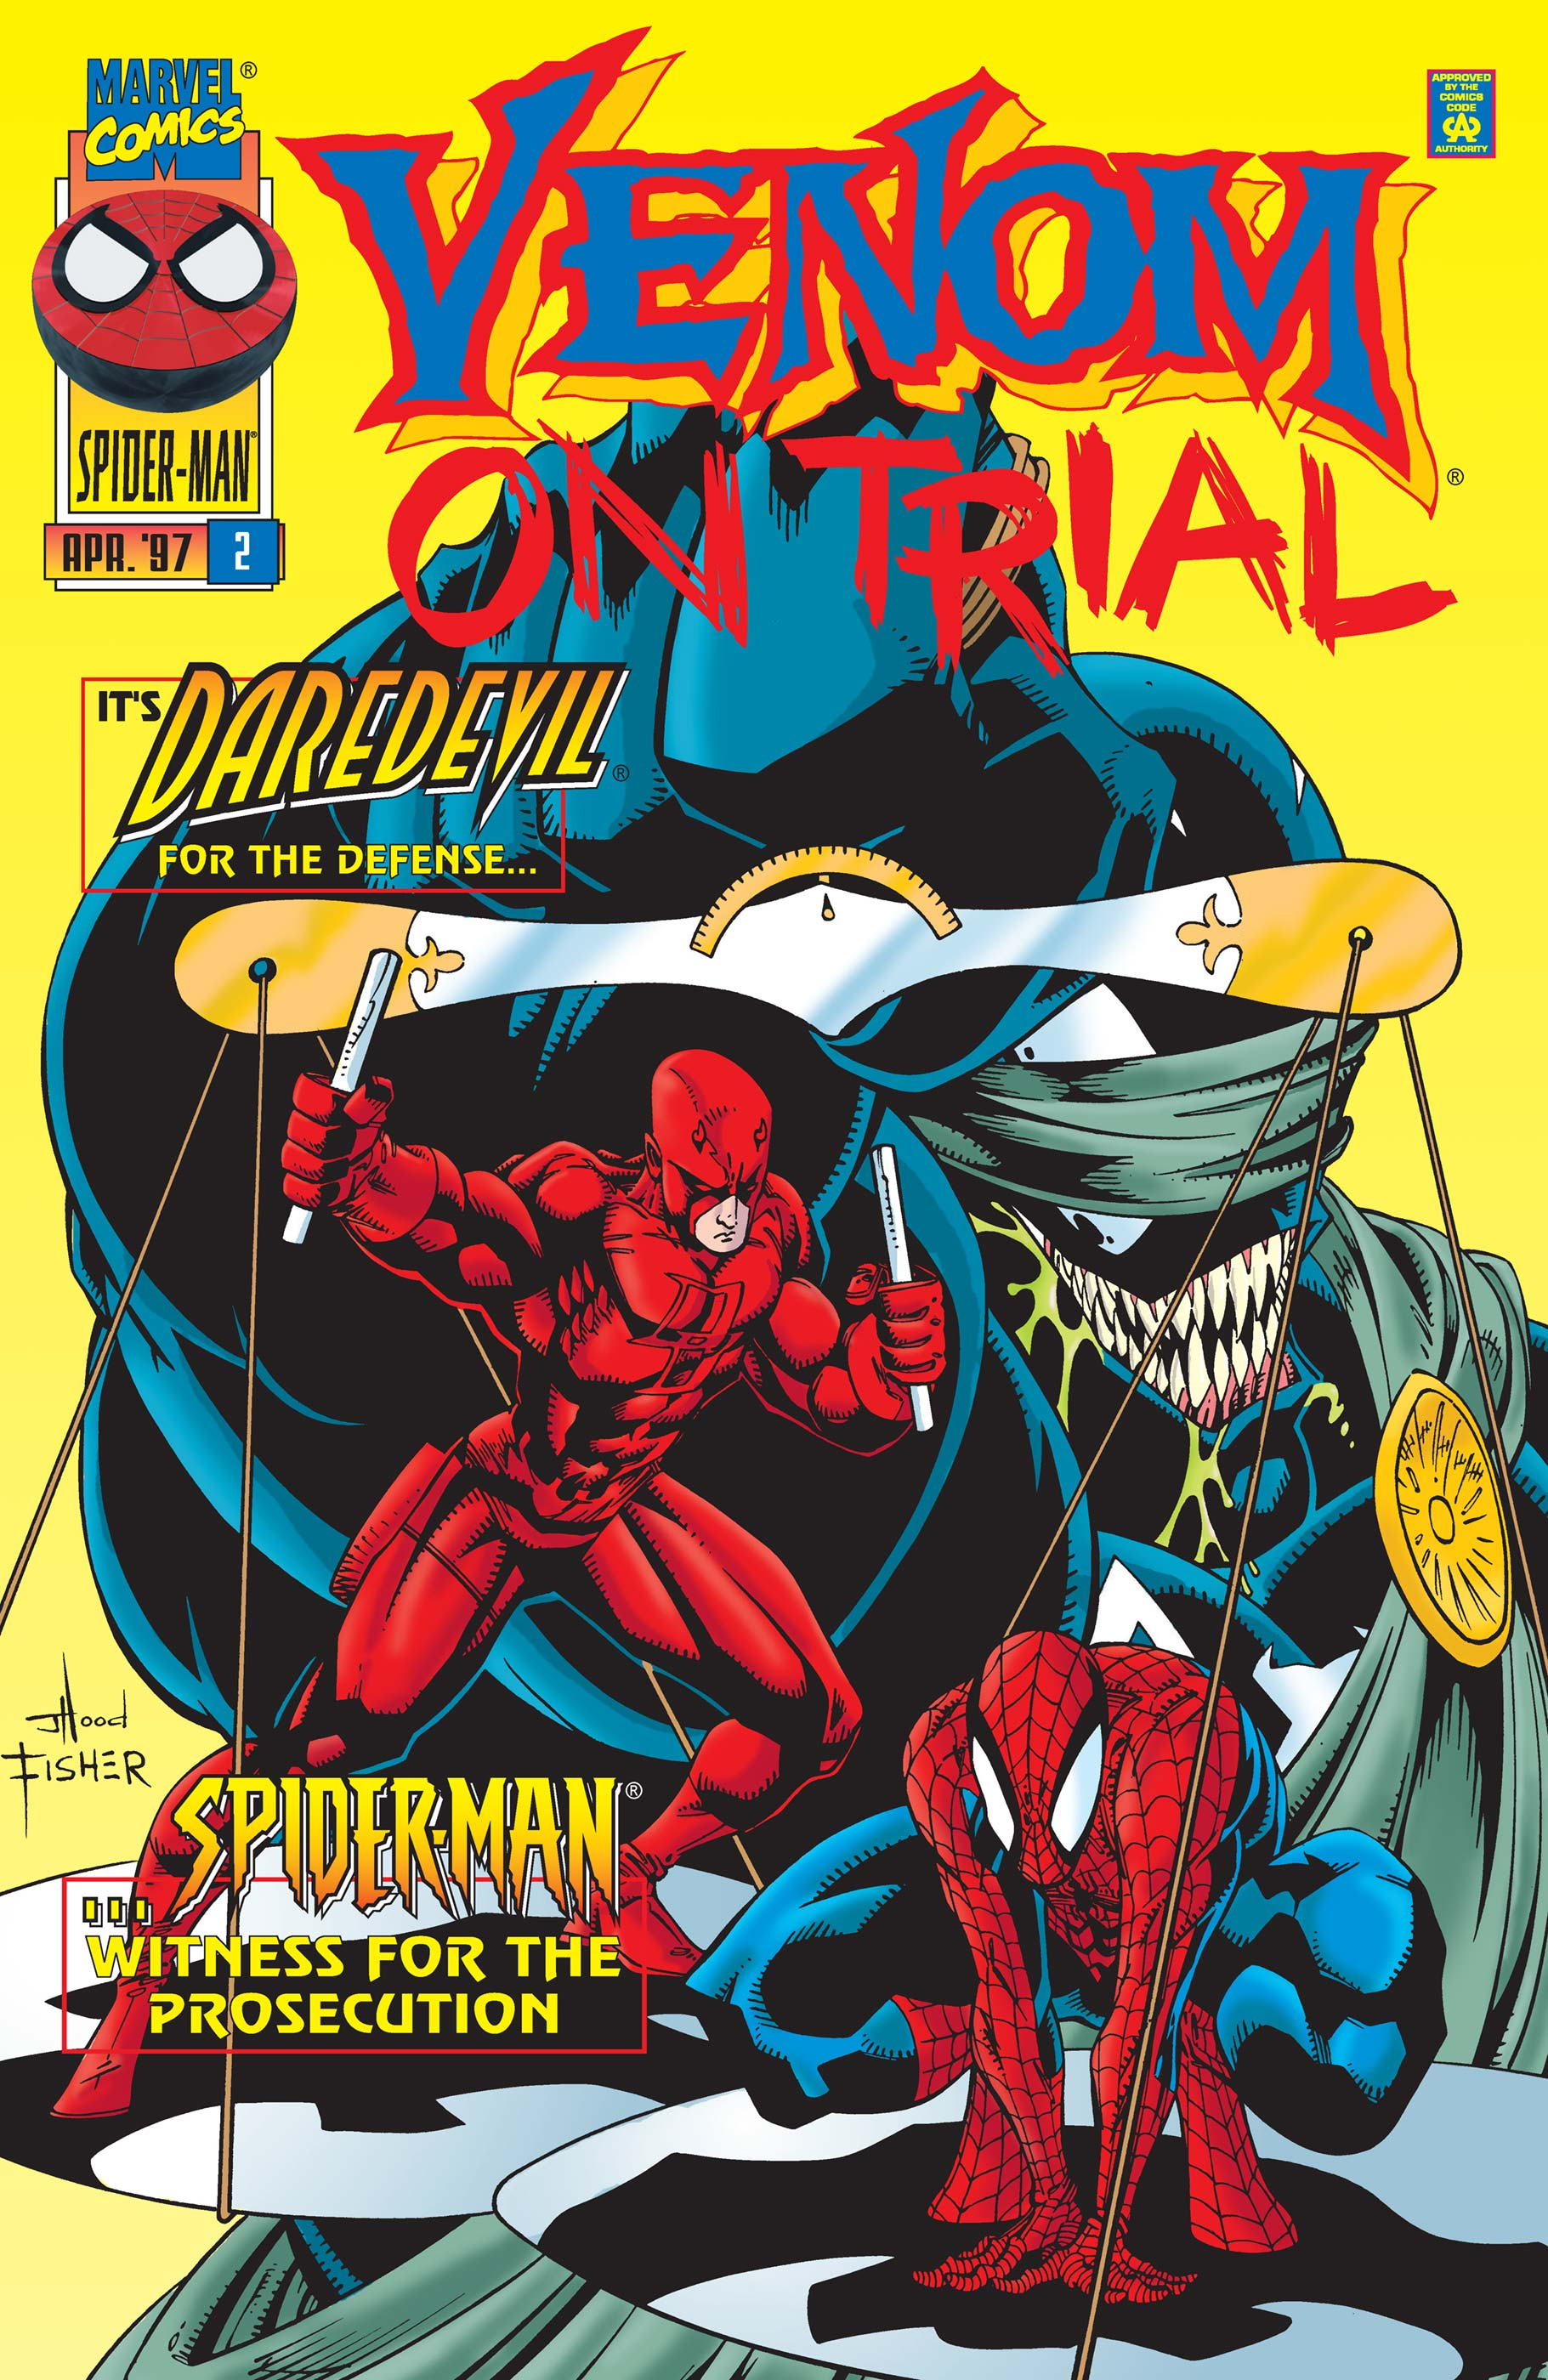 Venom: On Trial (1997) #2